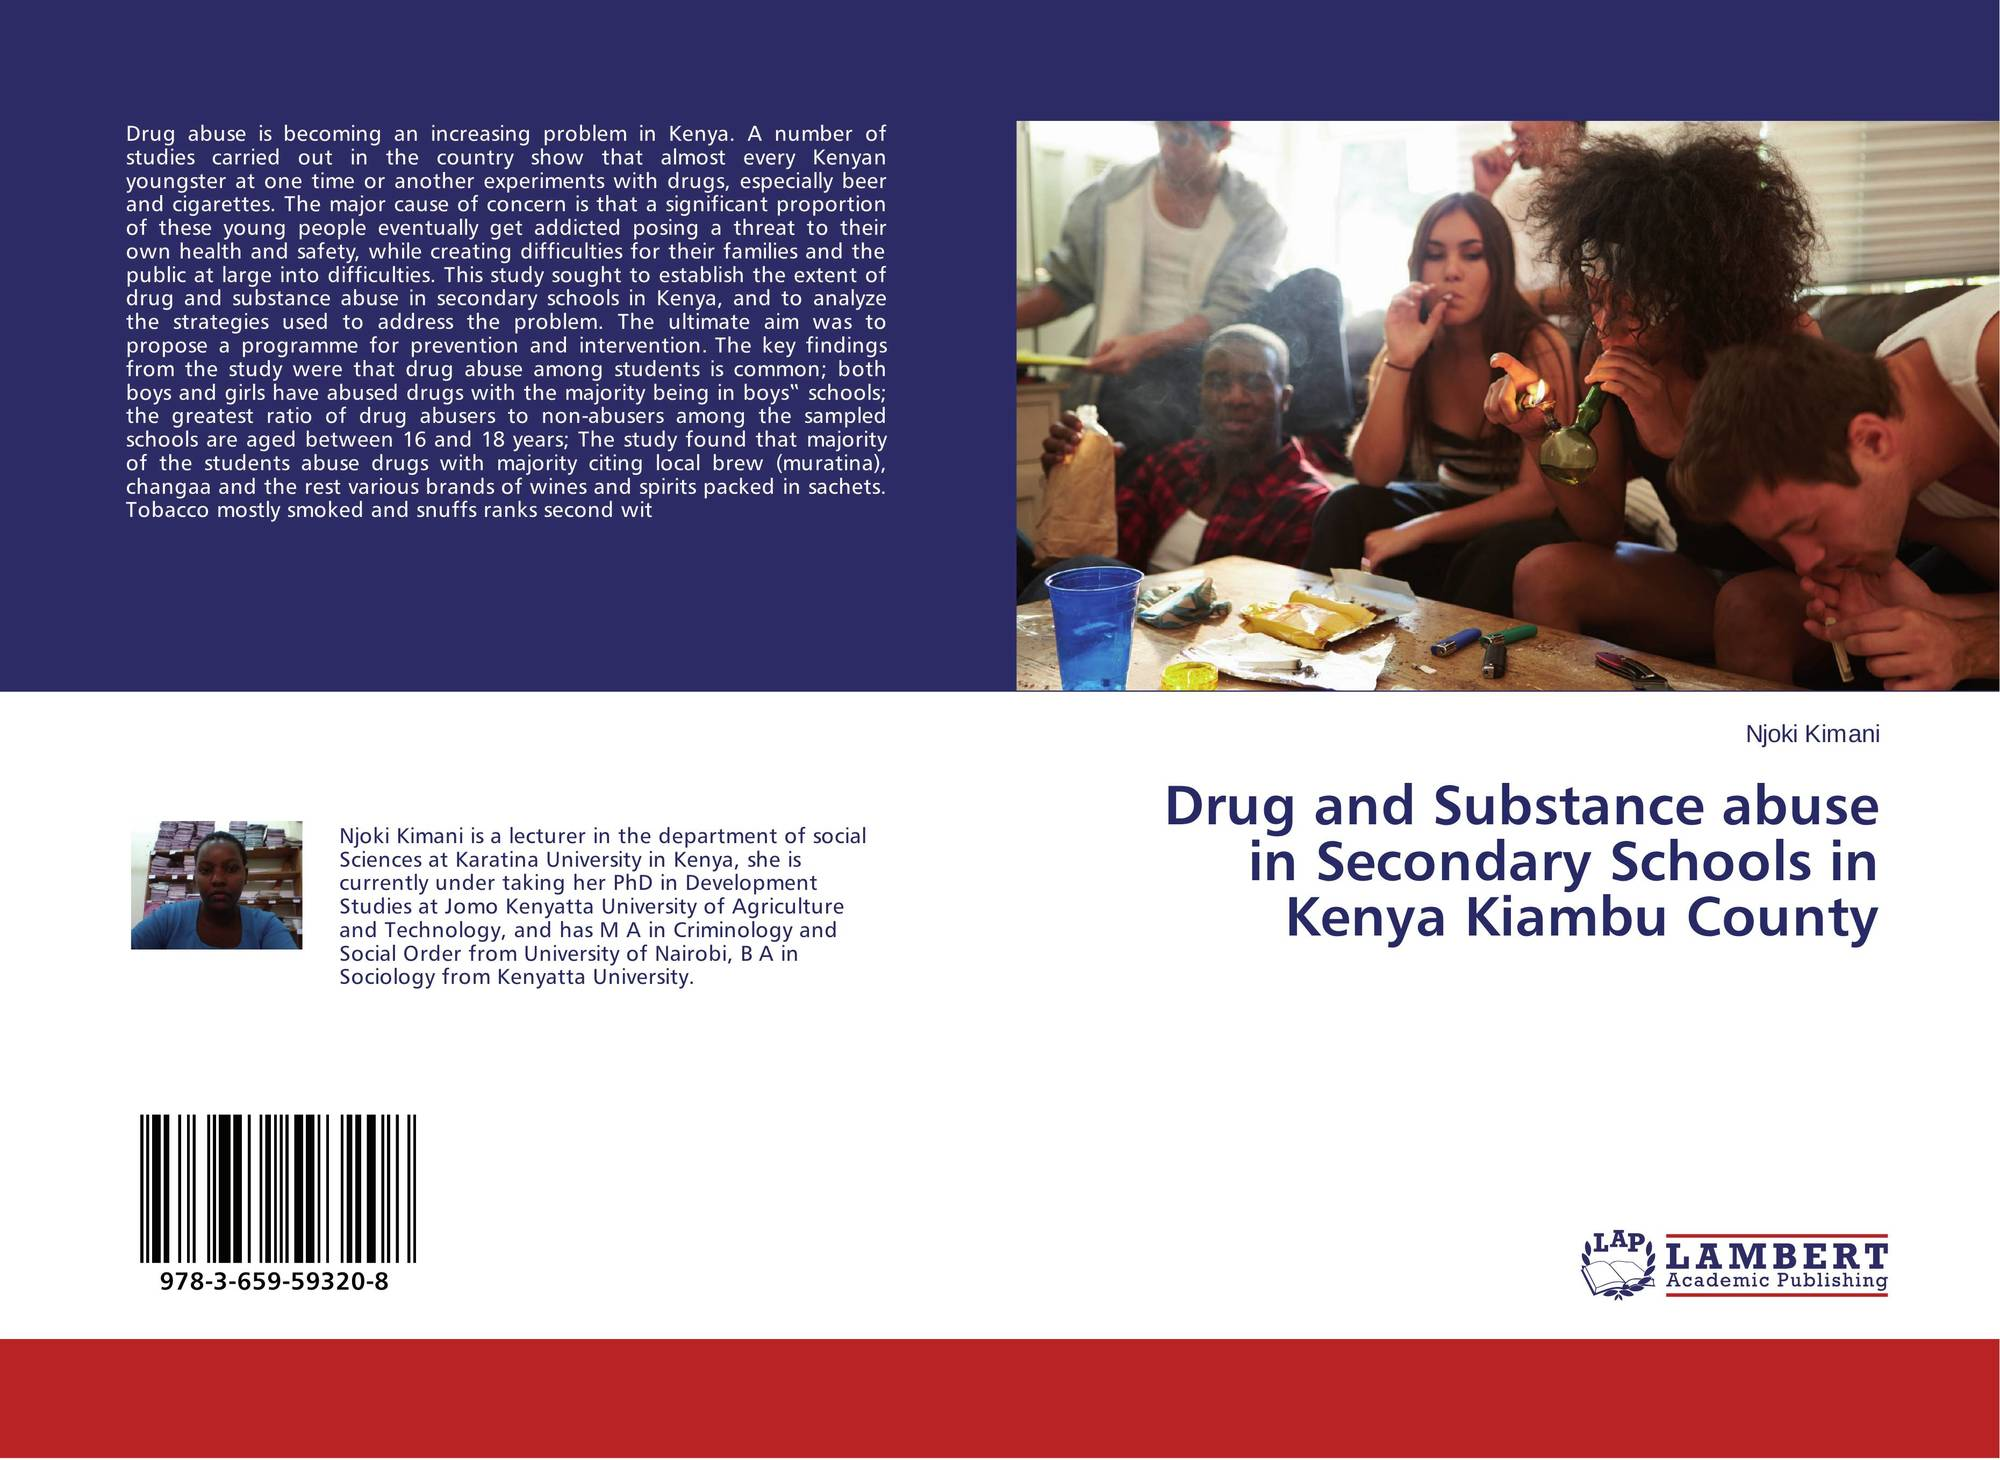 Drug and Substance abuse in Secondary Schools in Kenya